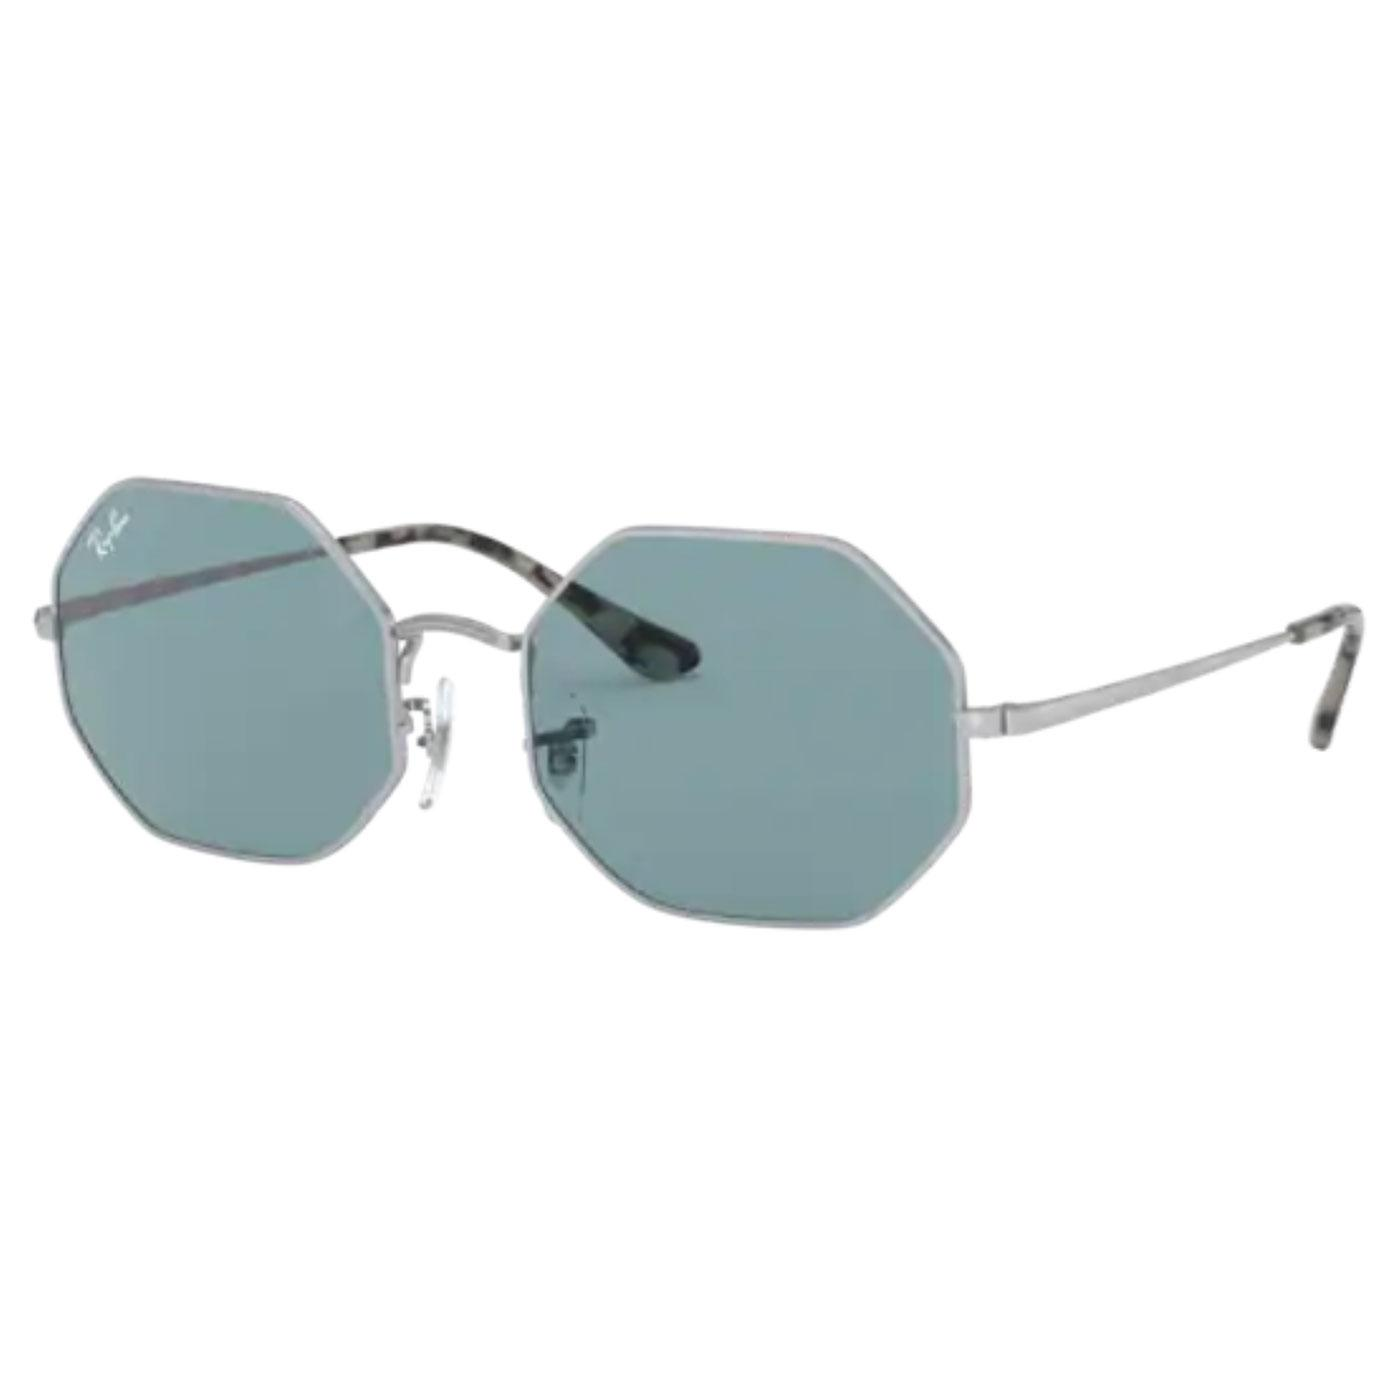 RAY-BAN RB1972 Octagon Sunglasses (Silver/Blue)